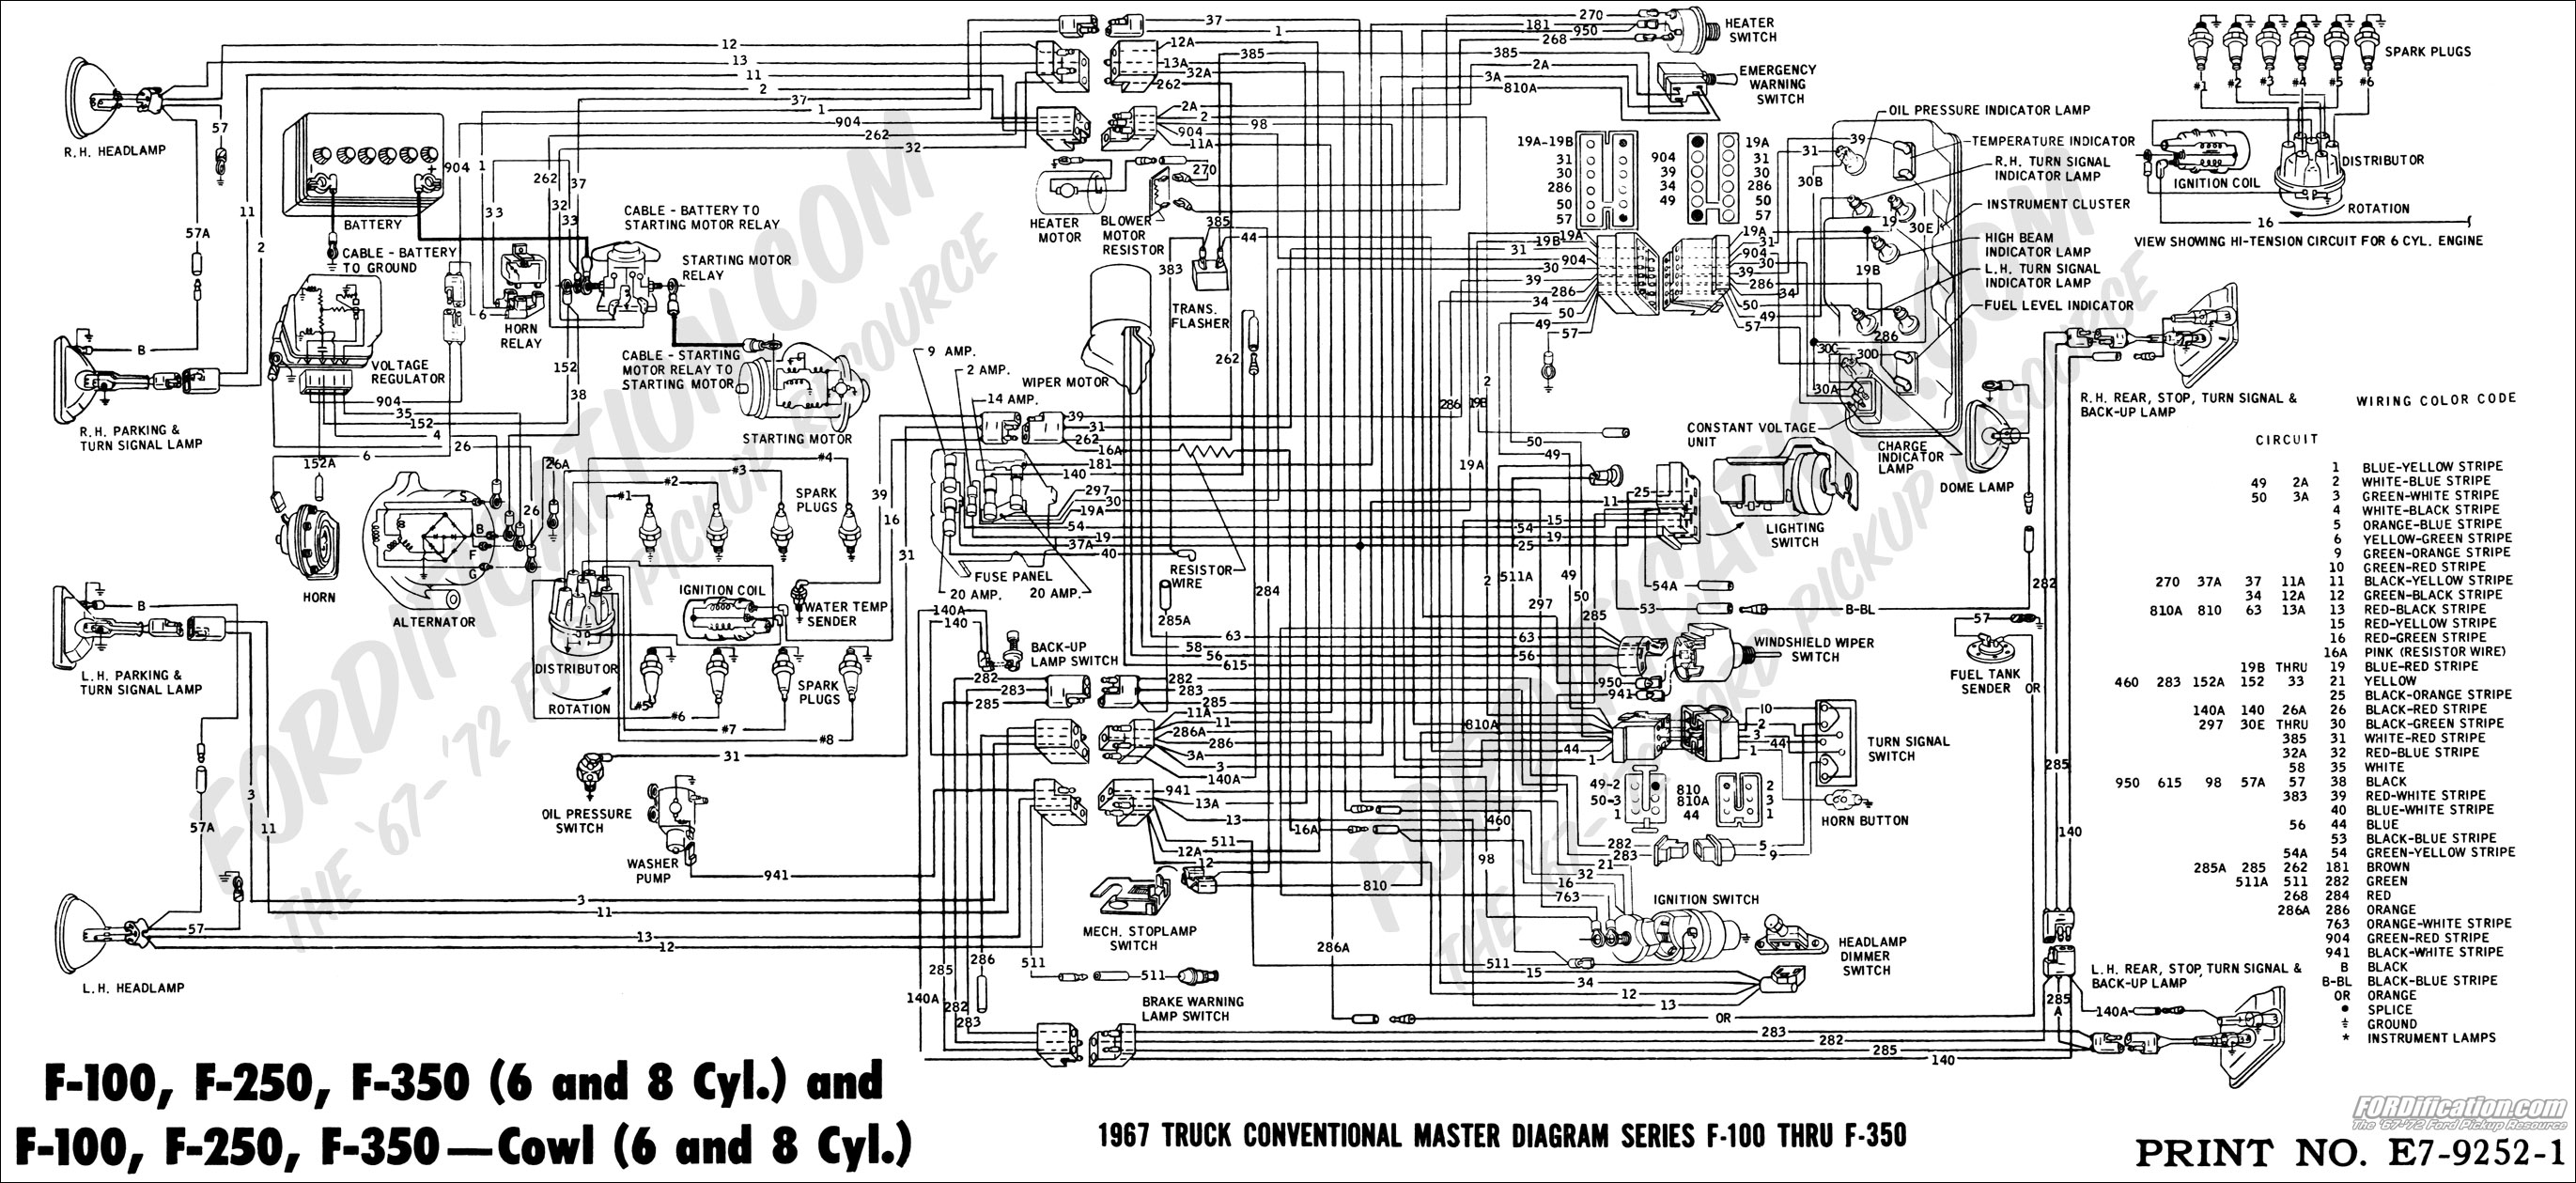 wiring diagram ford e350 schematics and wiring diagrams 2002 e350 fuse box diagram car wiring 1994 ford f150 radio wiring diagram